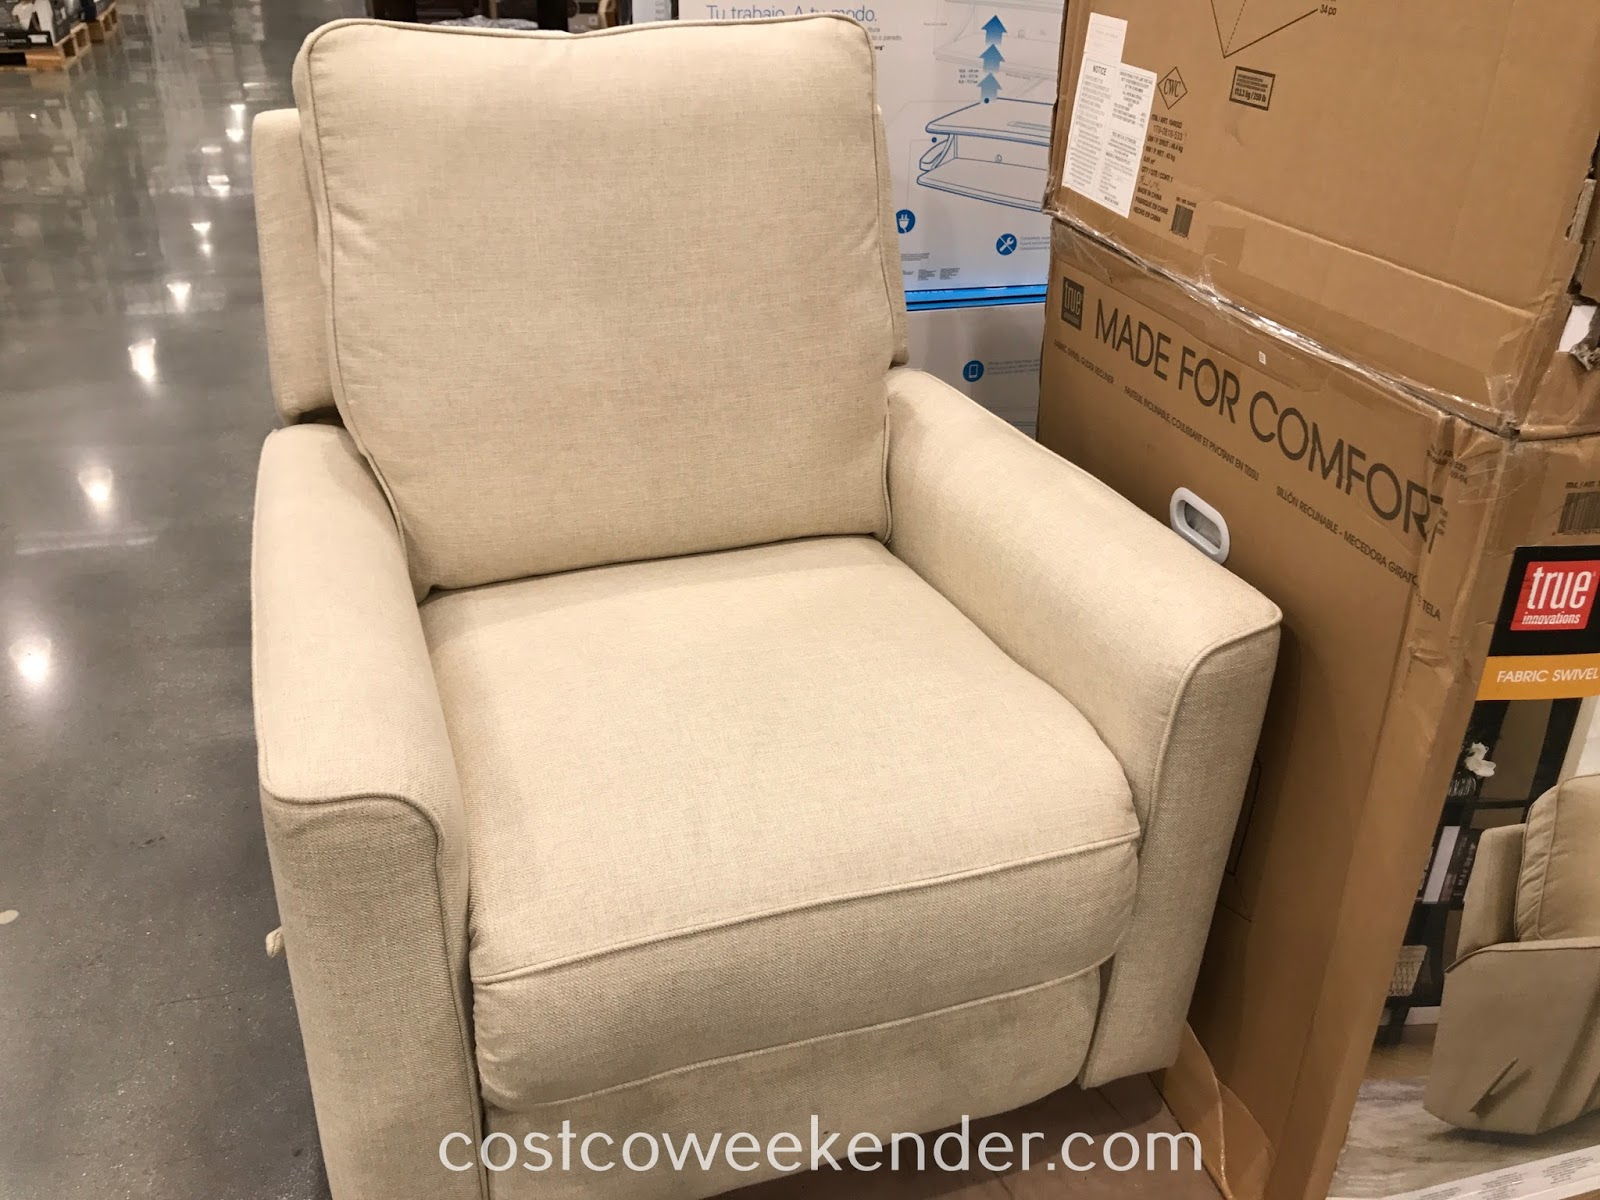 True Innovations Fabric Swivel Glider Recliner Chair | Costco Weekender In Decker Ii Fabric Swivel Rocker Recliners (Image 19 of 20)